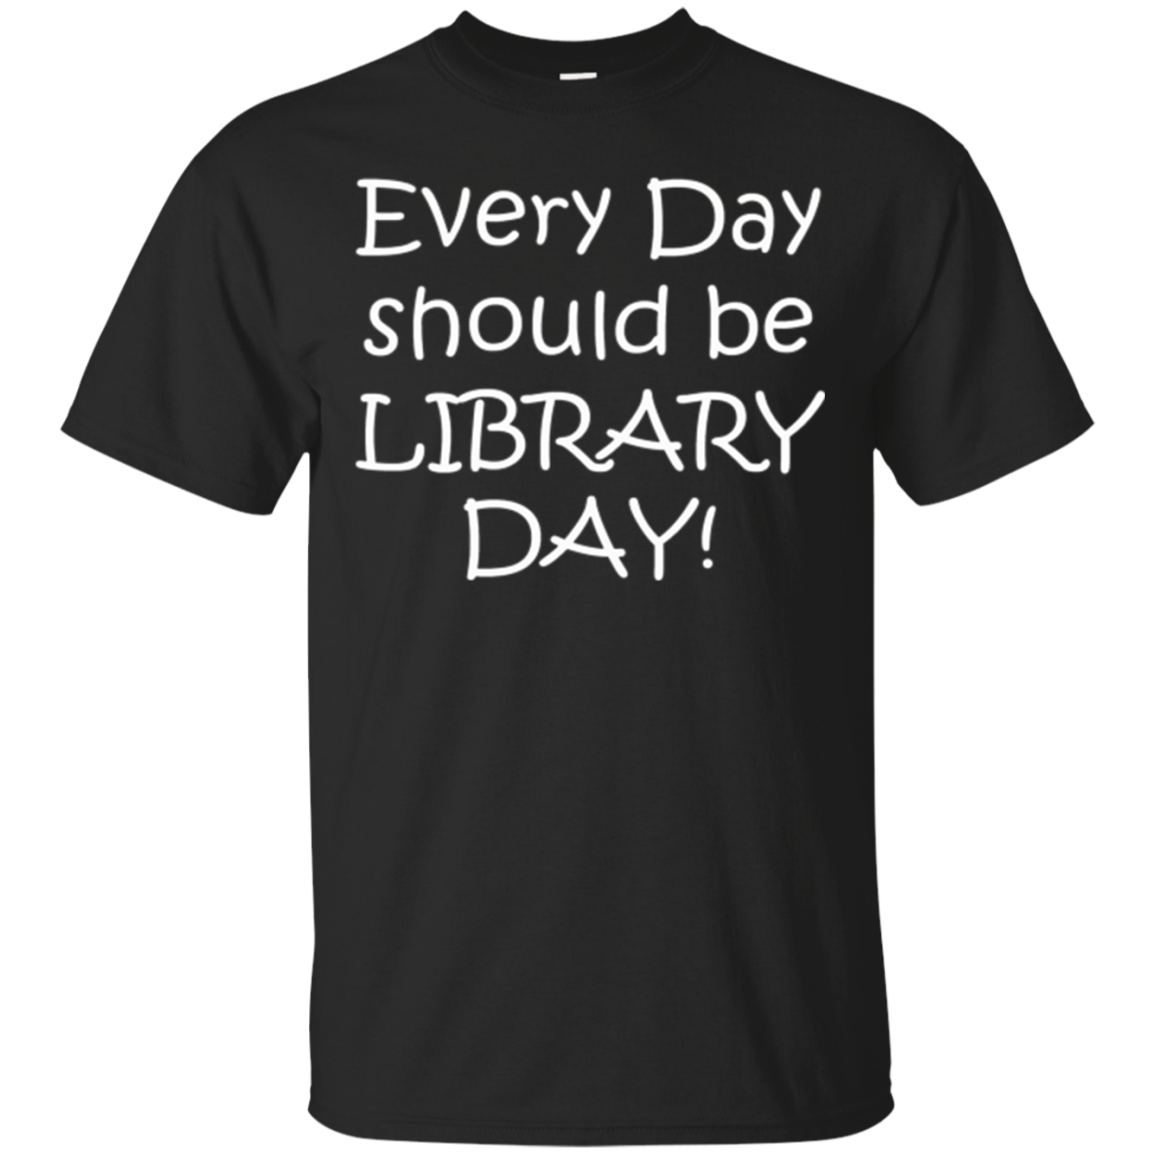 Every day should be library day!